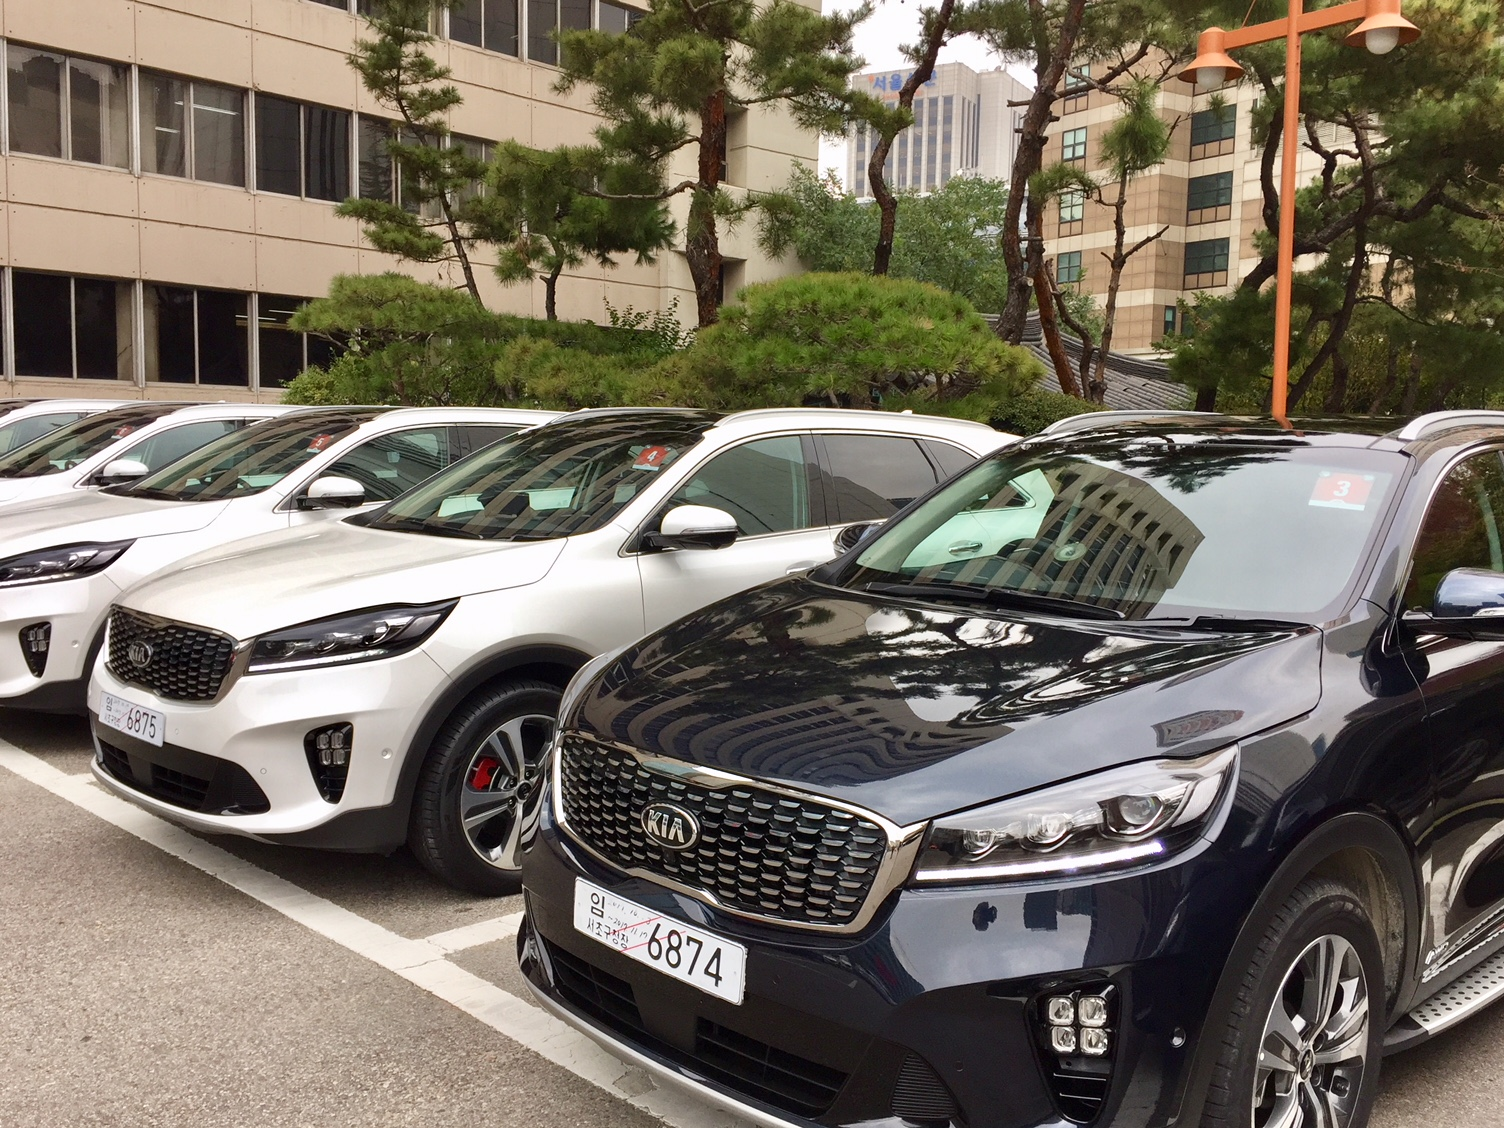 Kia Cars in South Korea